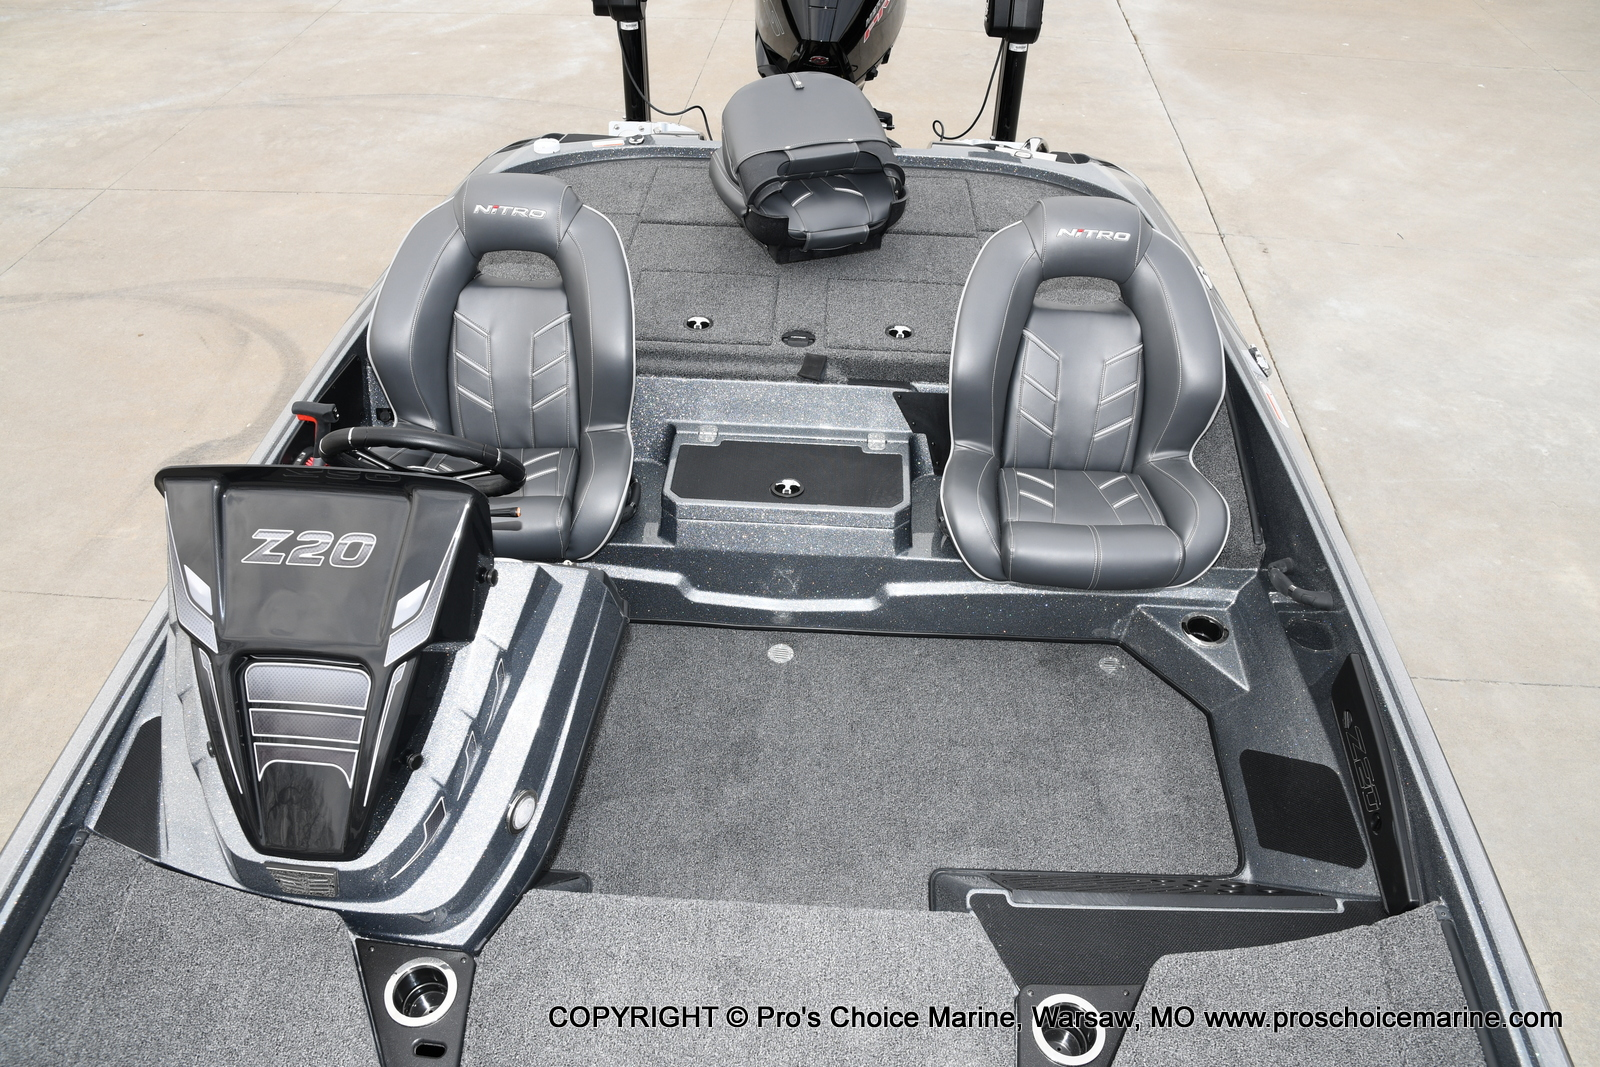 2020 Nitro boat for sale, model of the boat is Z20 Pro Pack & Image # 8 of 50